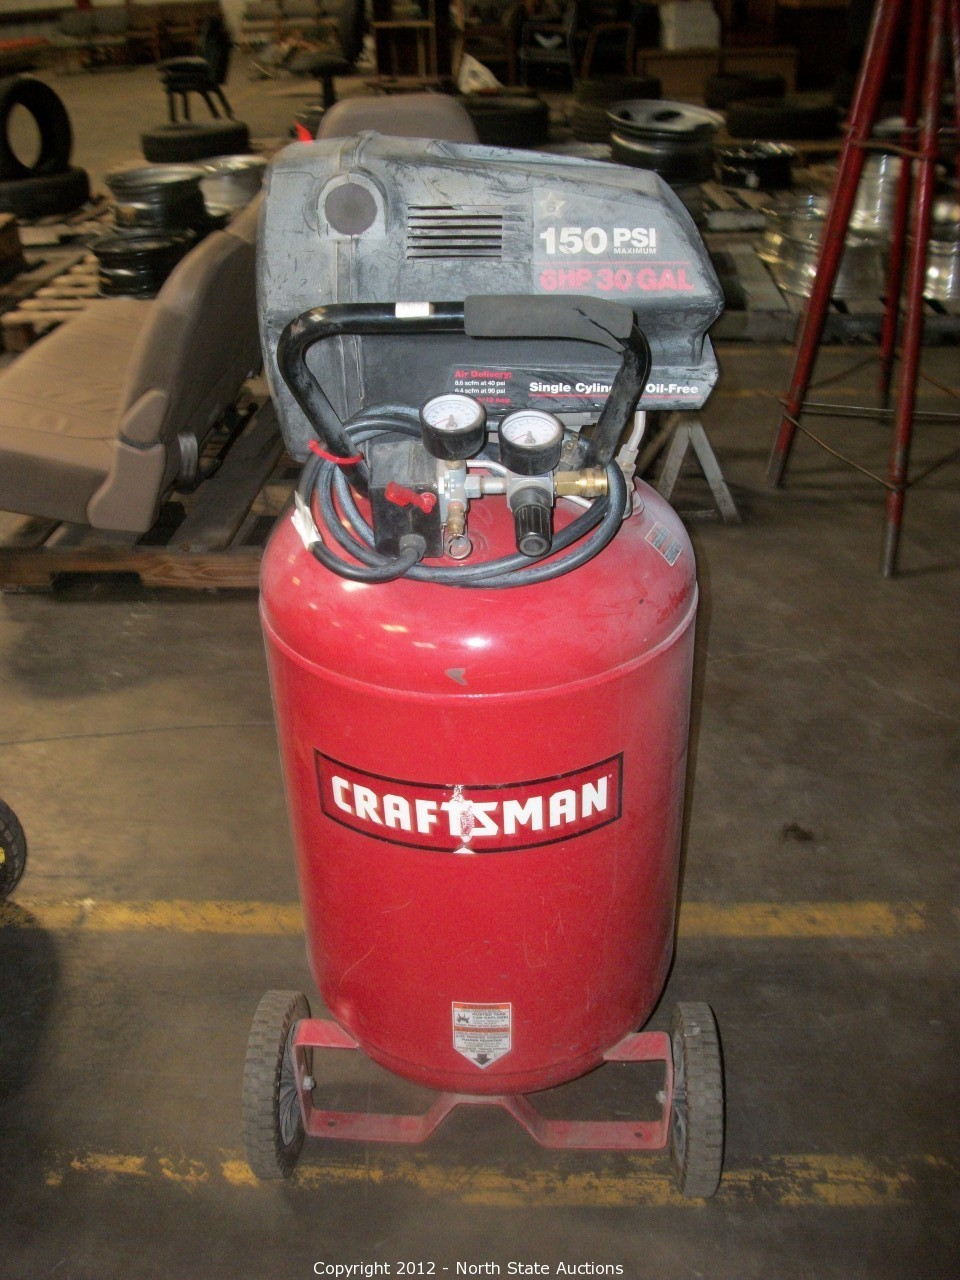 North State Auctions - Auction: Auto Repair Equipment